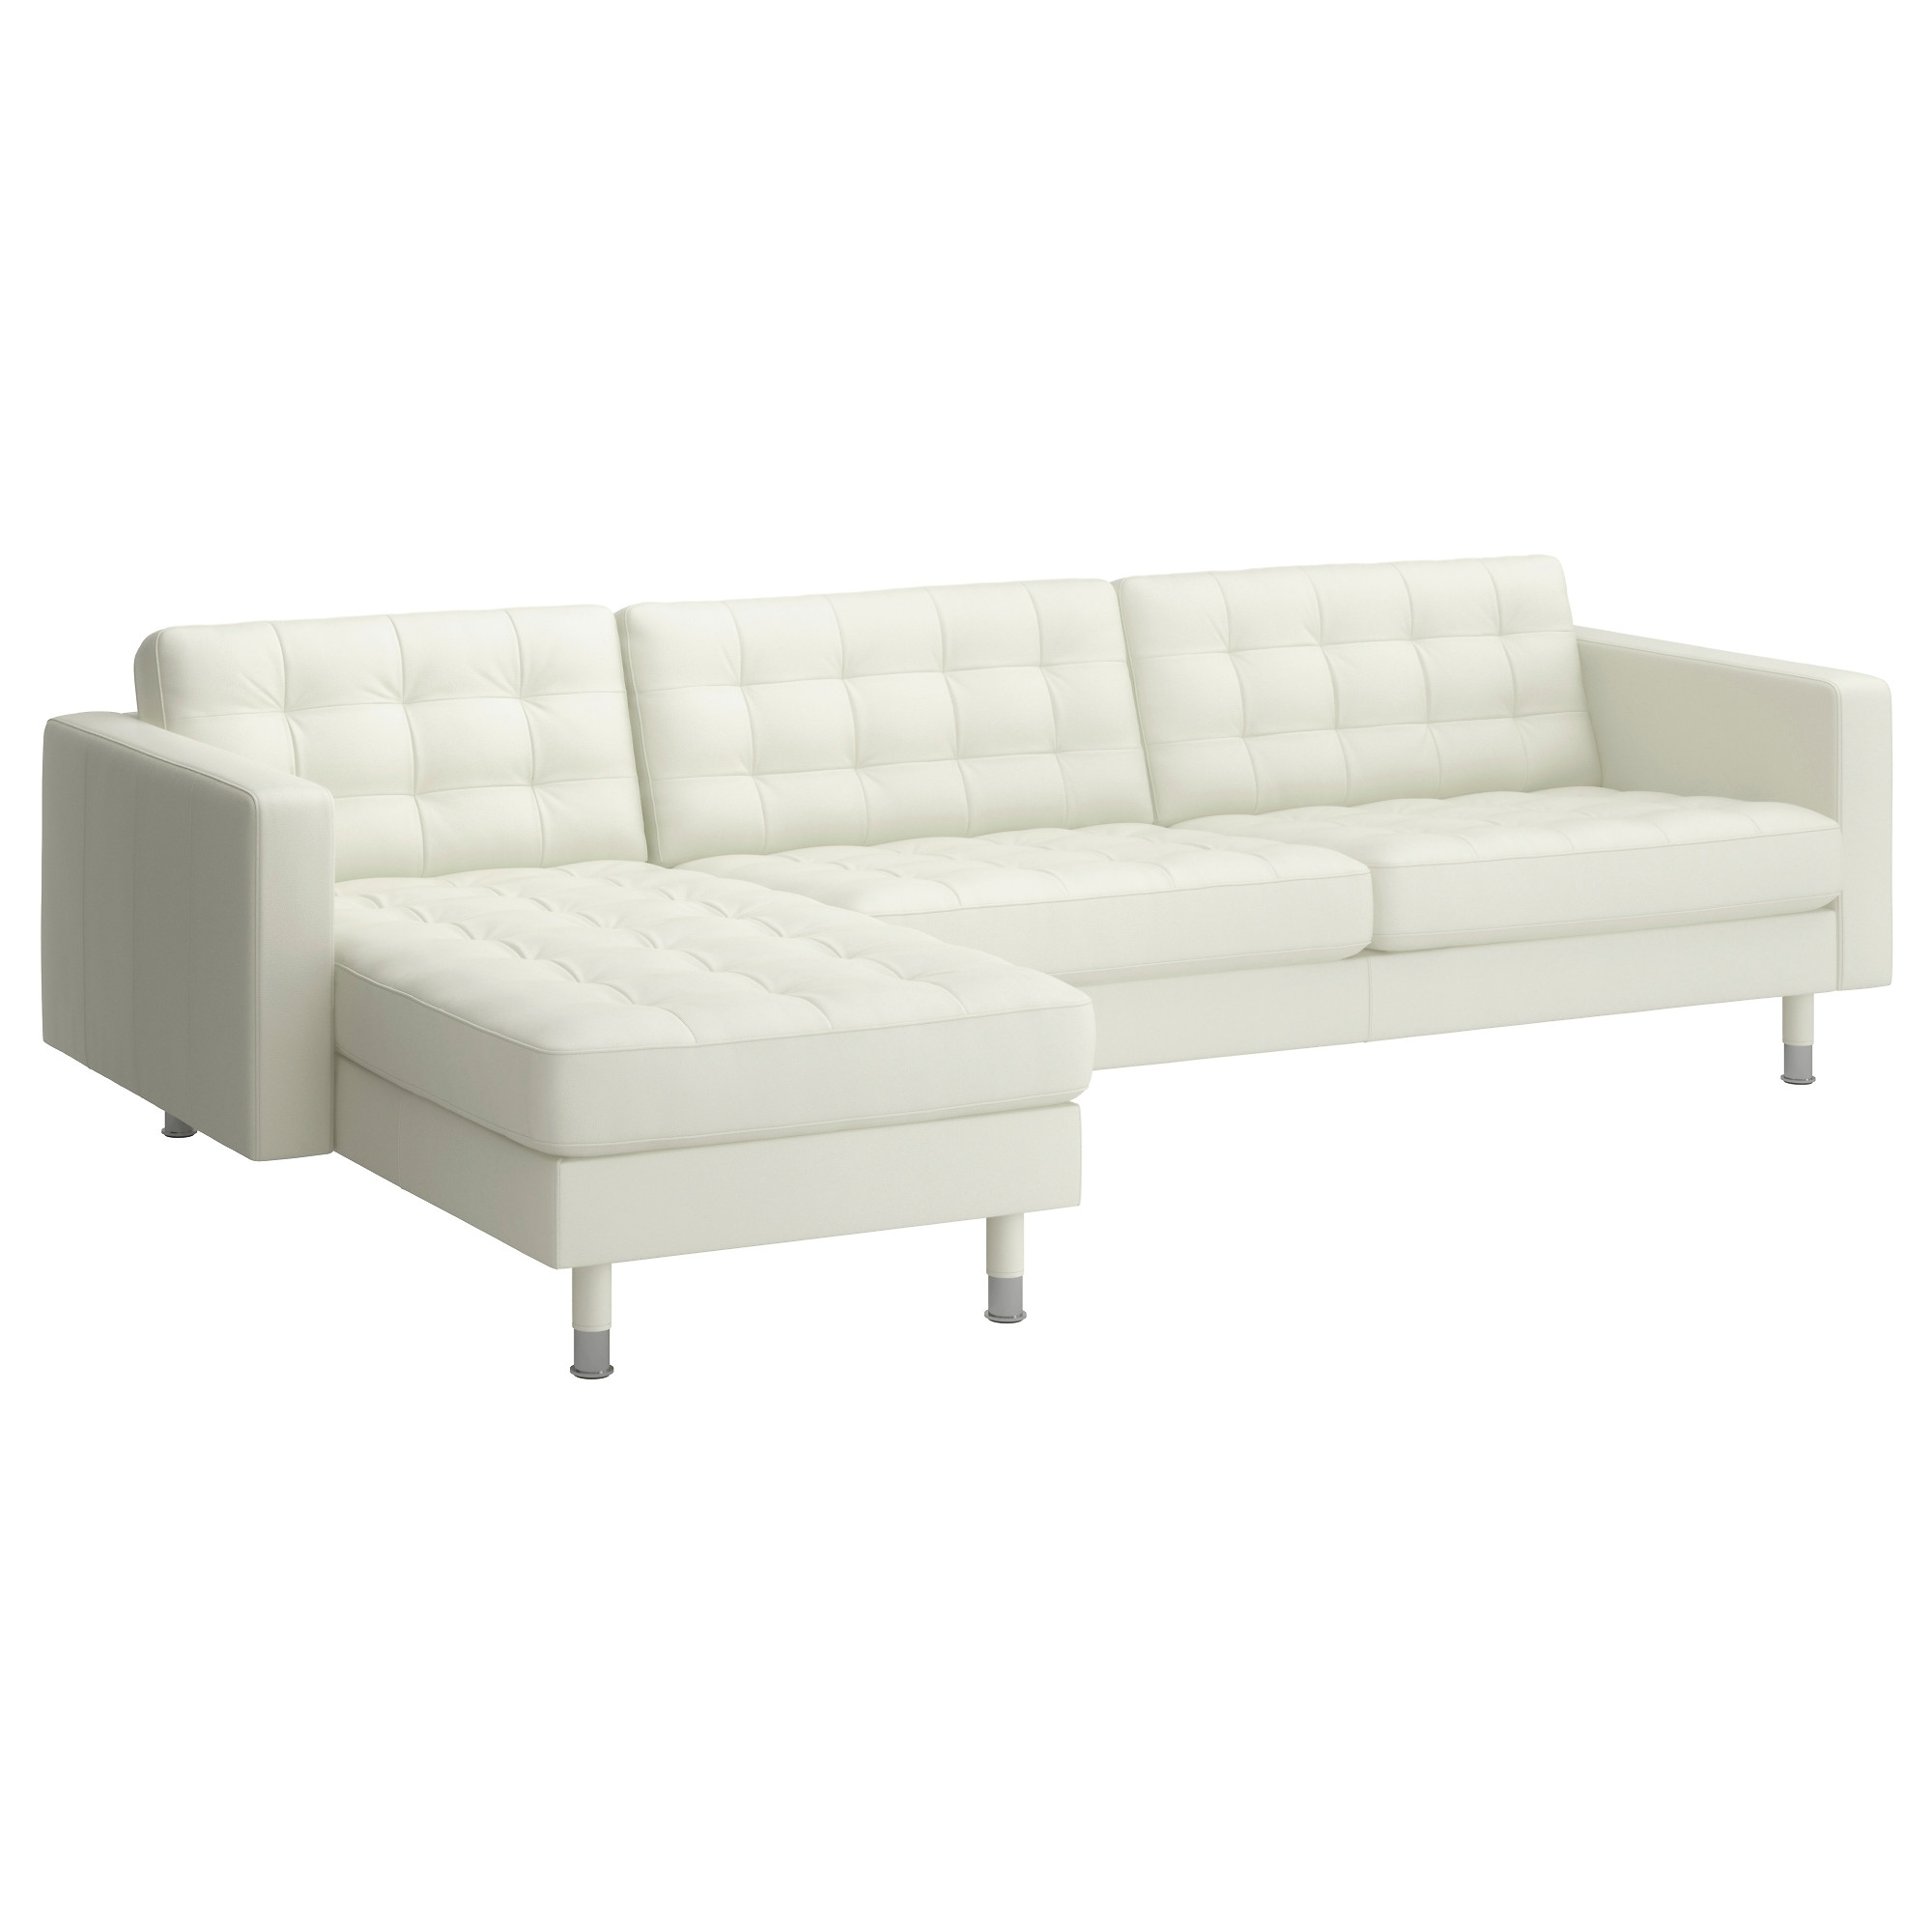 Most Popular Landskrona Sectional, 4 Seat – Grann/bomstad White, Metal – Ikea For White Leather Chaises (View 15 of 15)